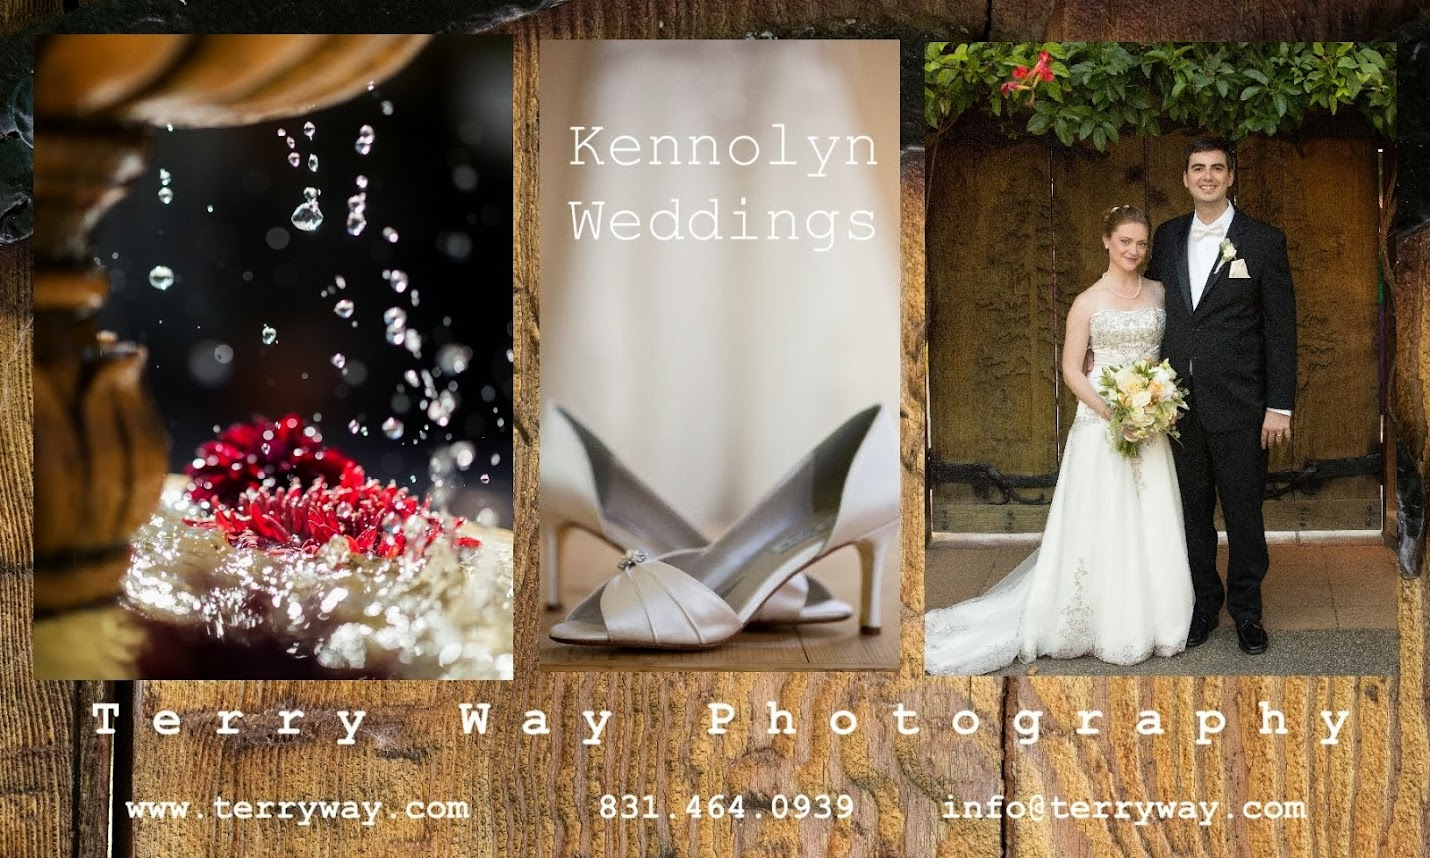 Kennolyn Wedding Photography by Terry Way